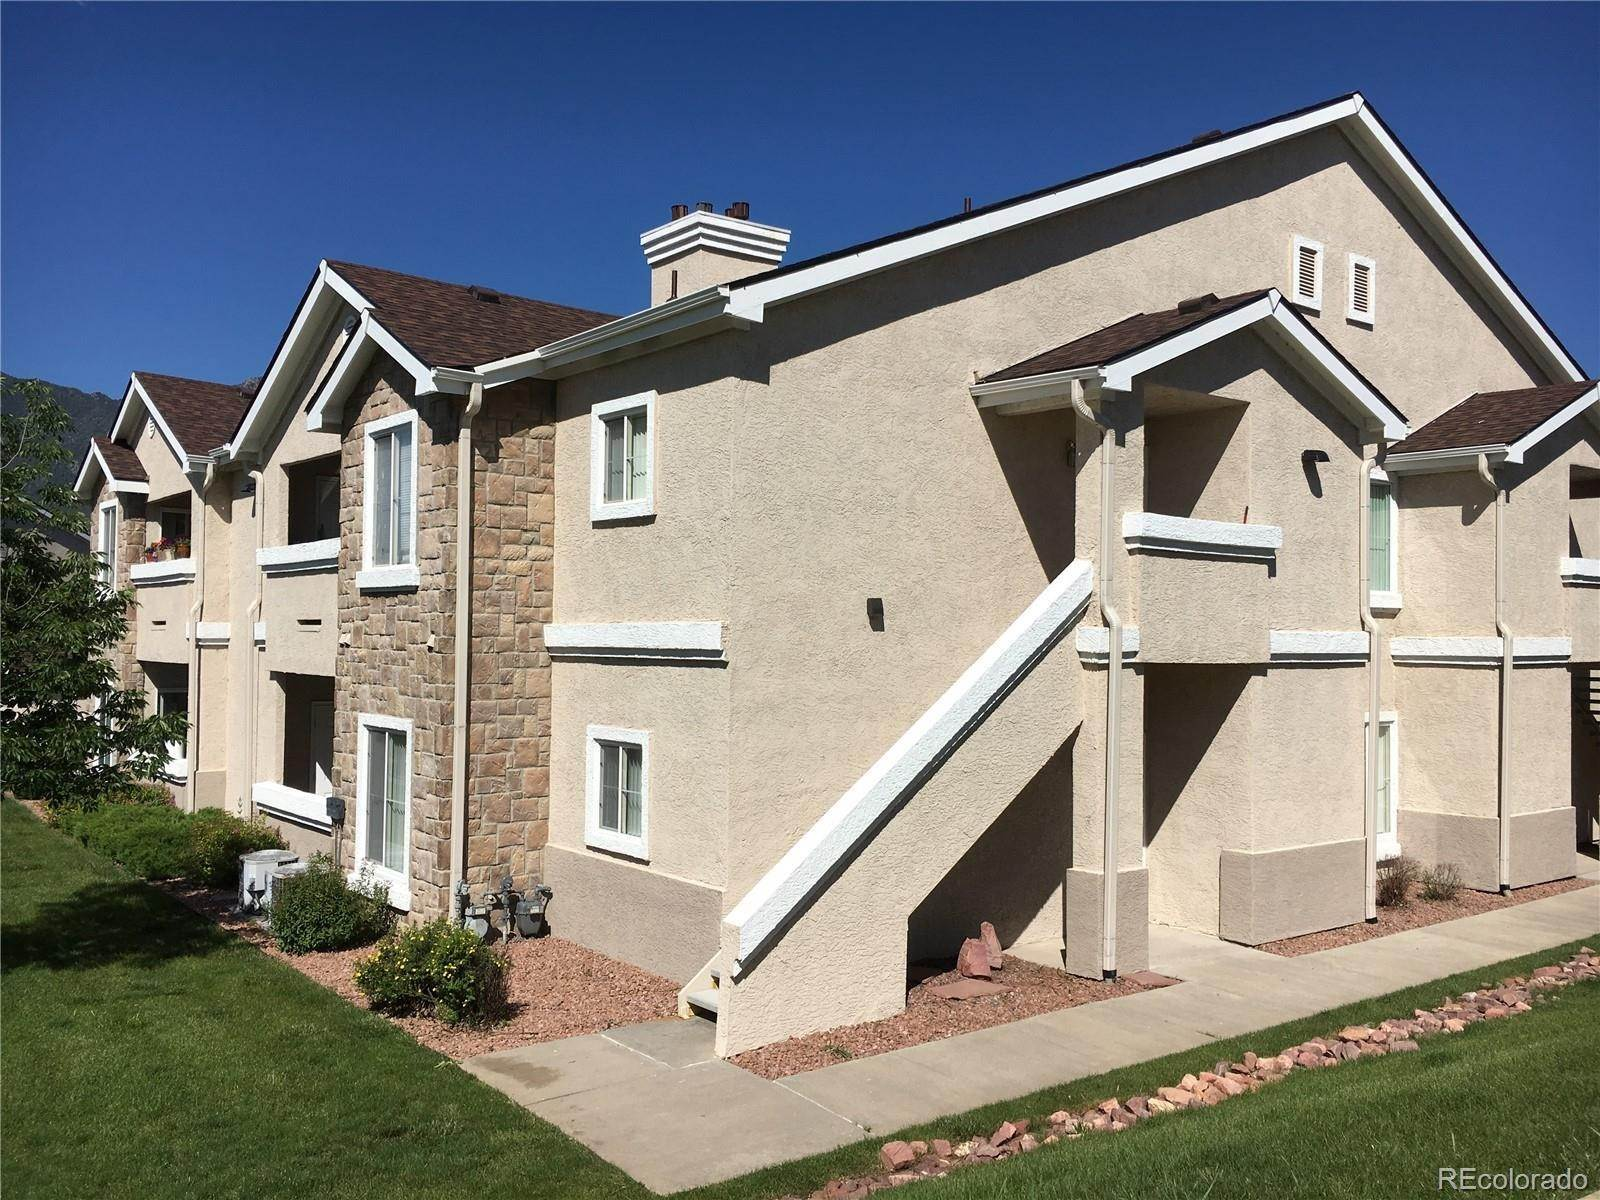 Condominiums at 3830 Strawberry Field Grove Colorado Springs, Colorado 80906 United States